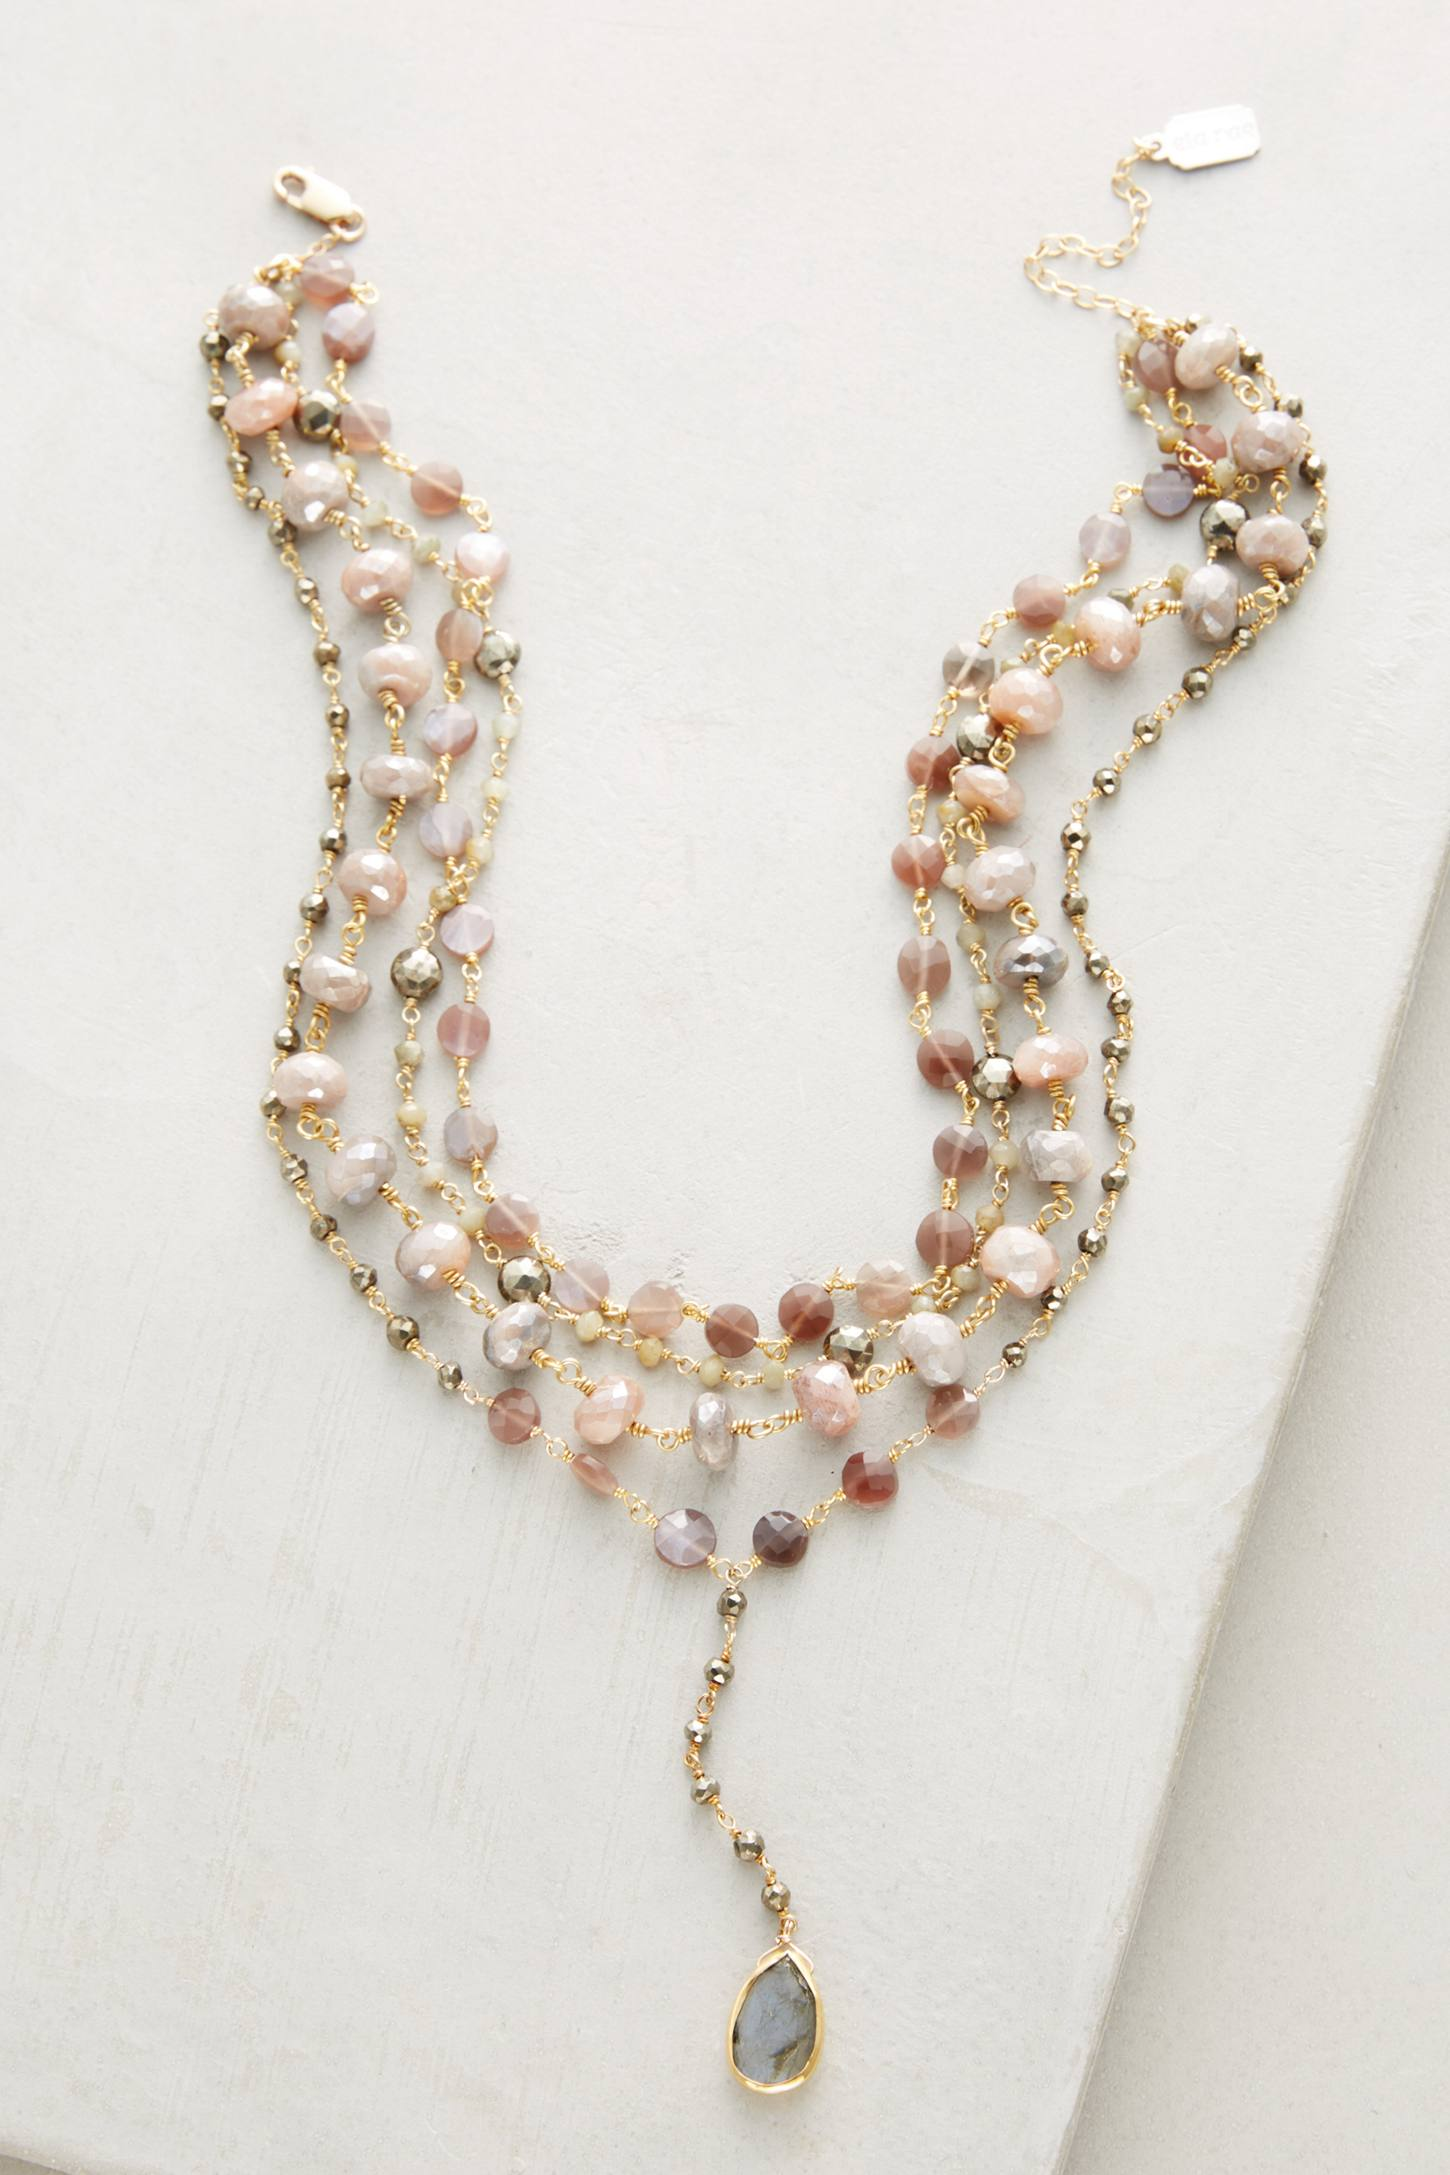 Slide View: 1: Layered Trio Necklace